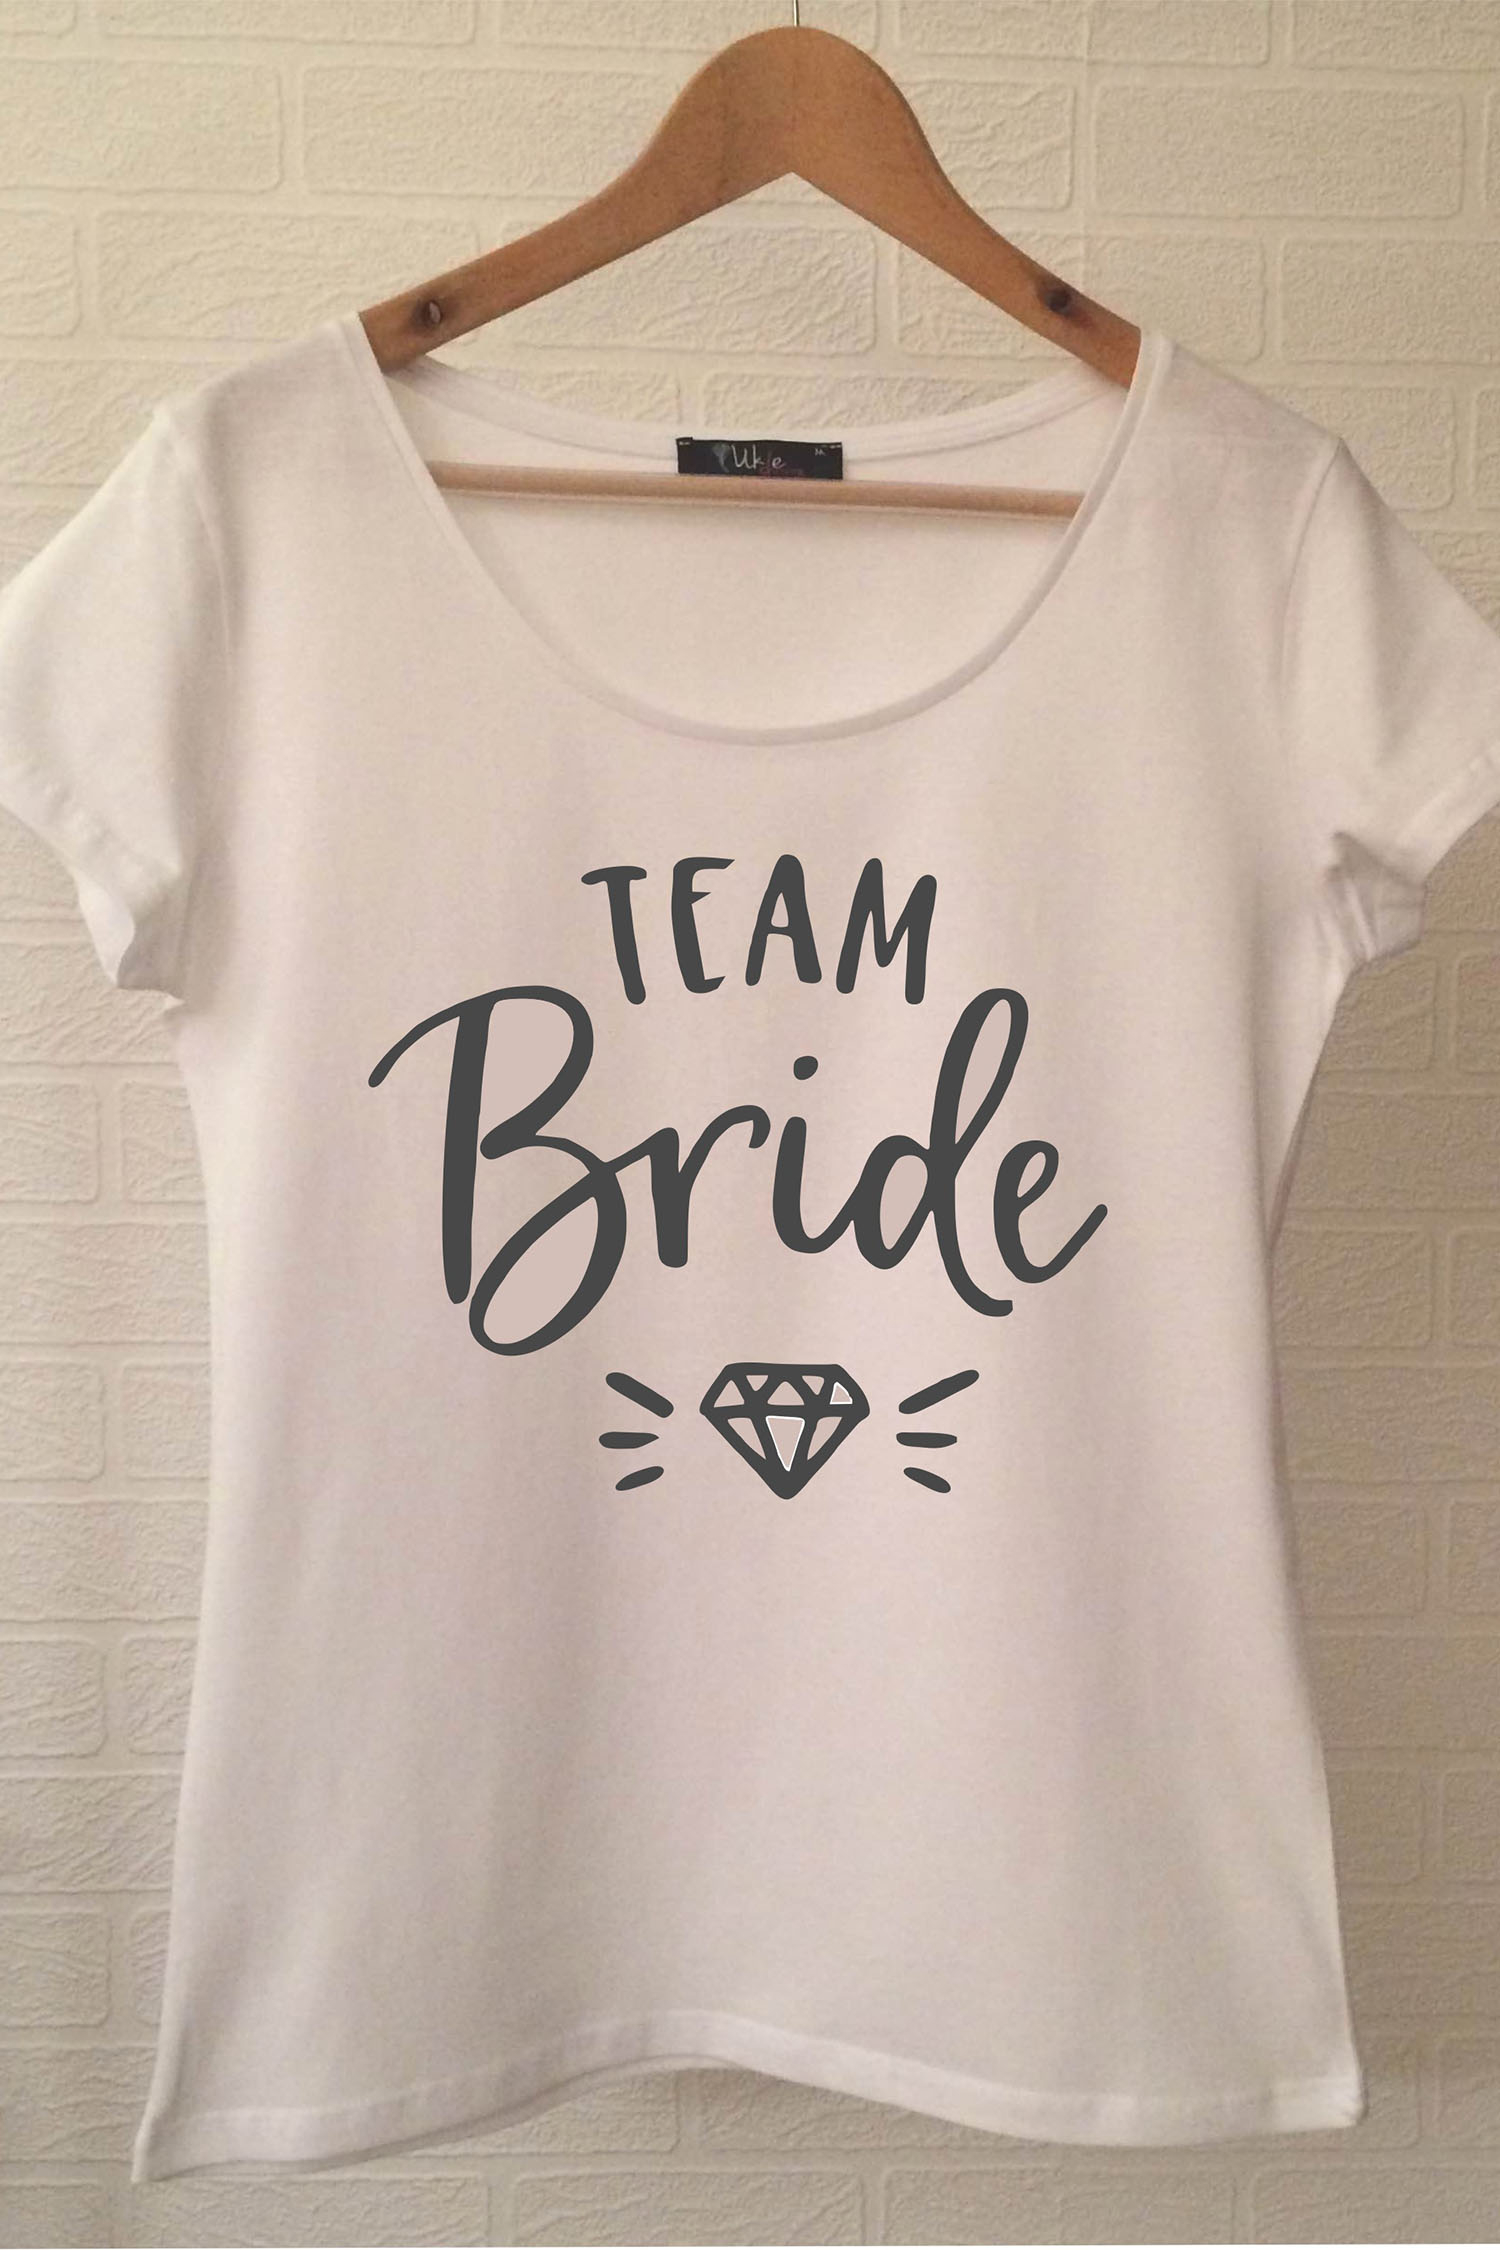 Team Bride T-shirt ukde109